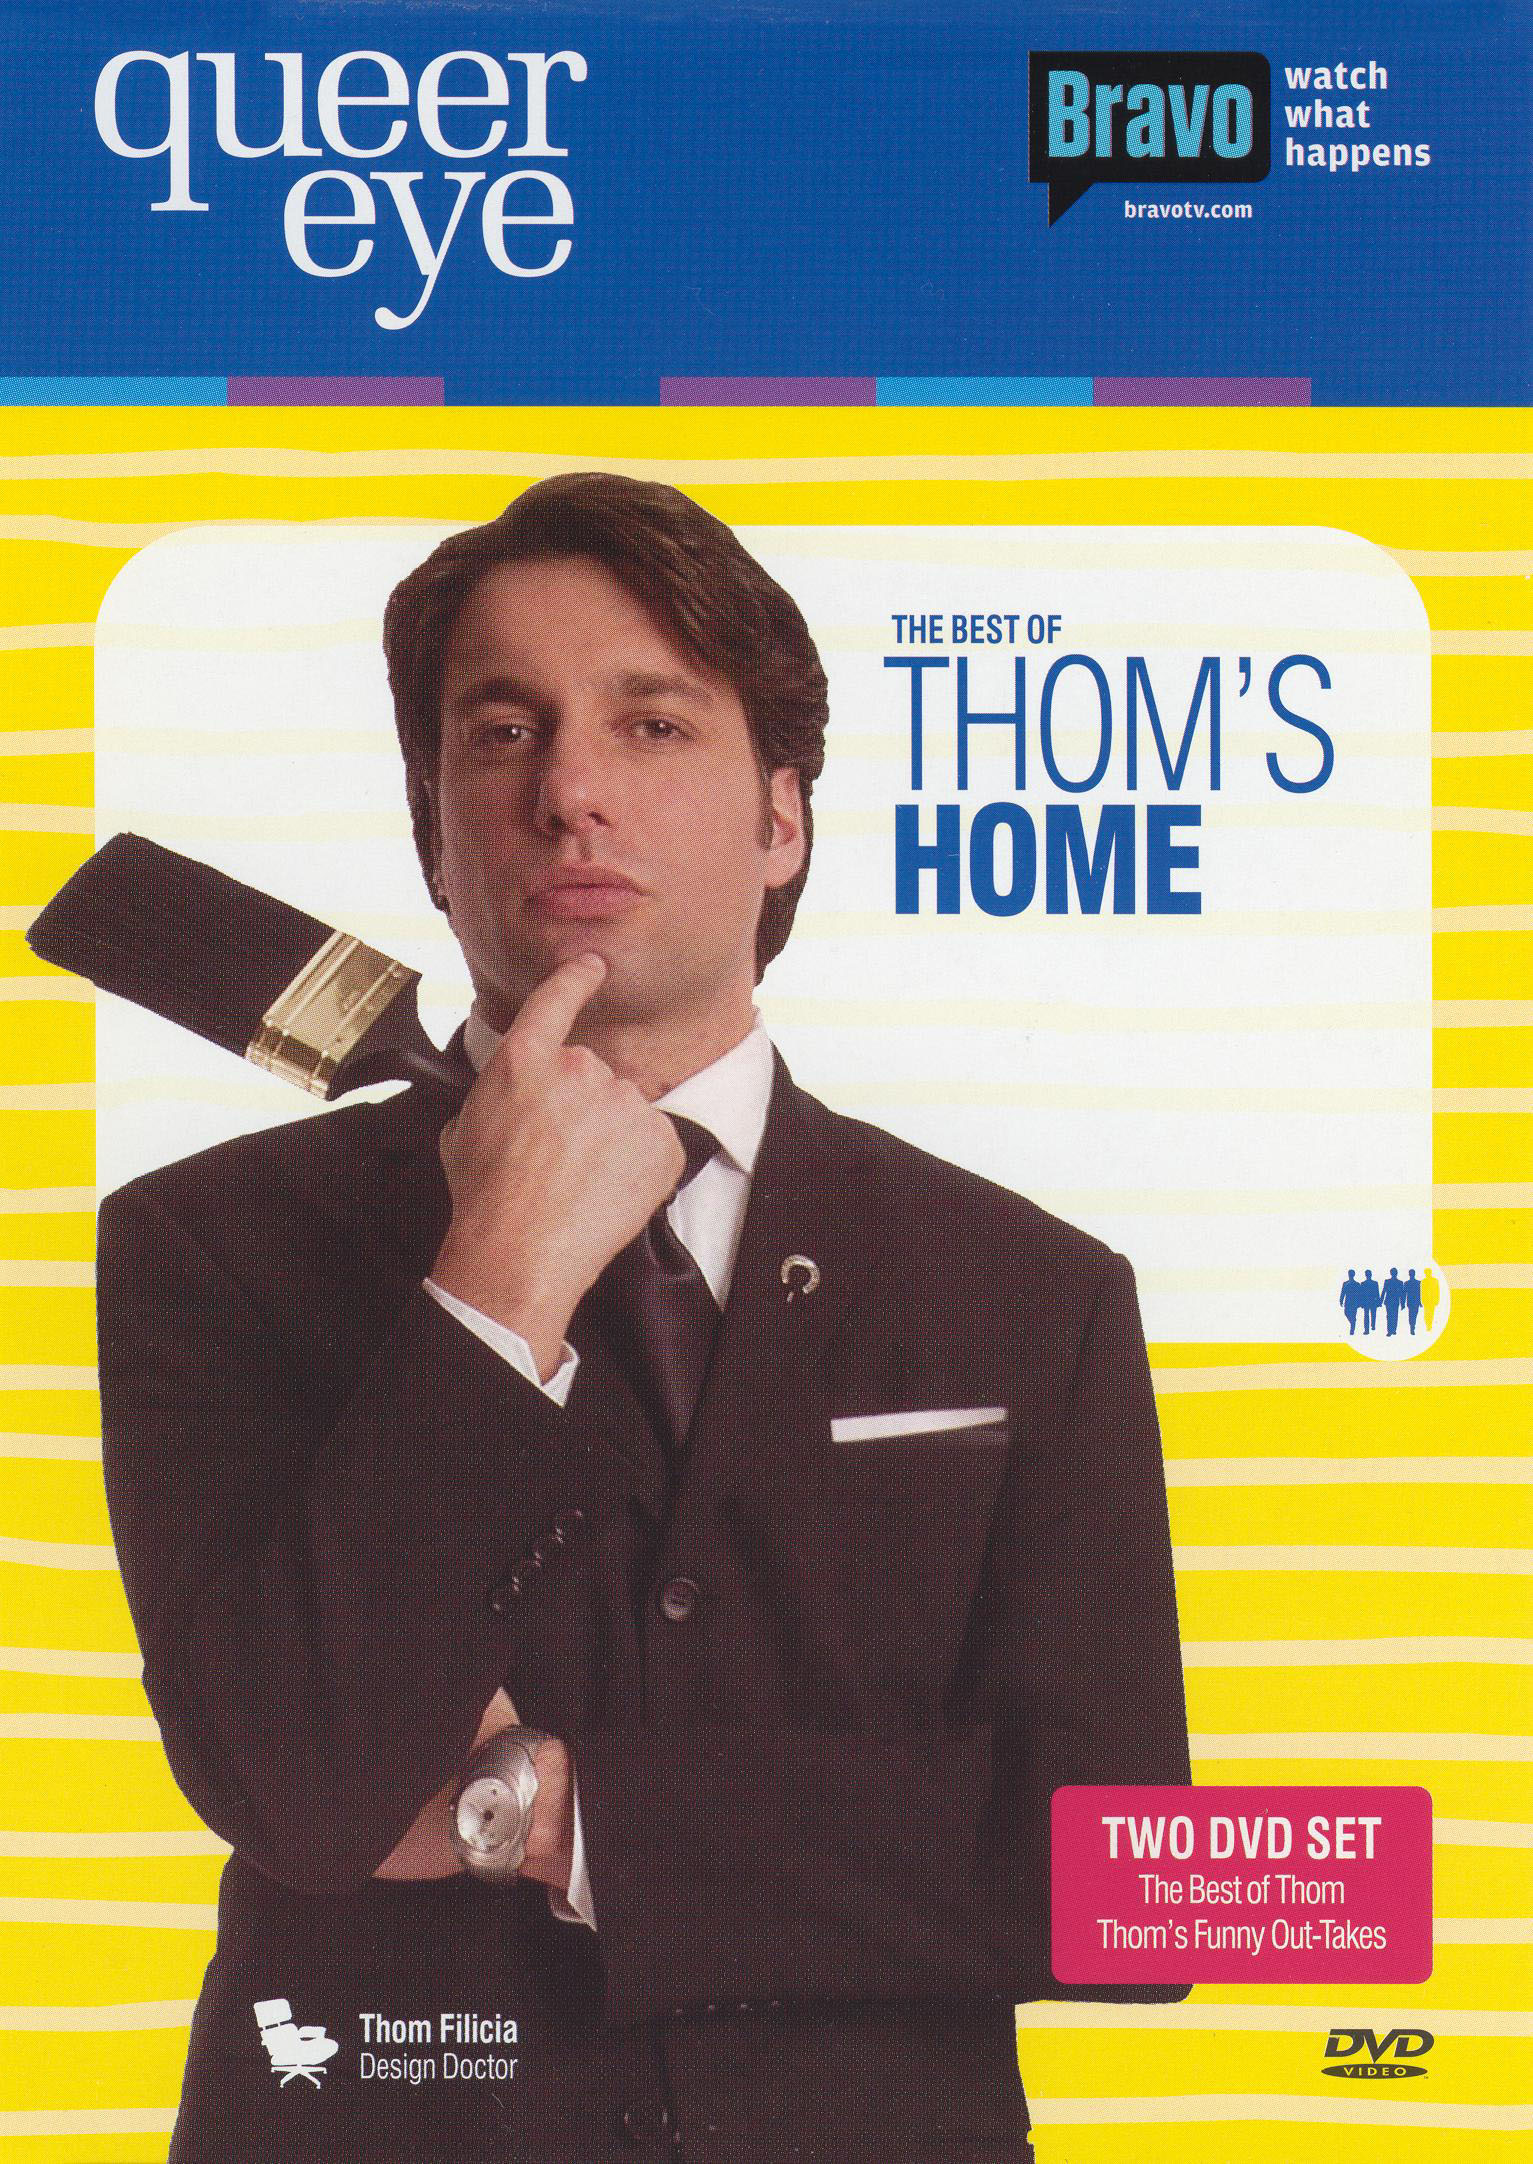 Queer Eye: The Best of Thom's Home